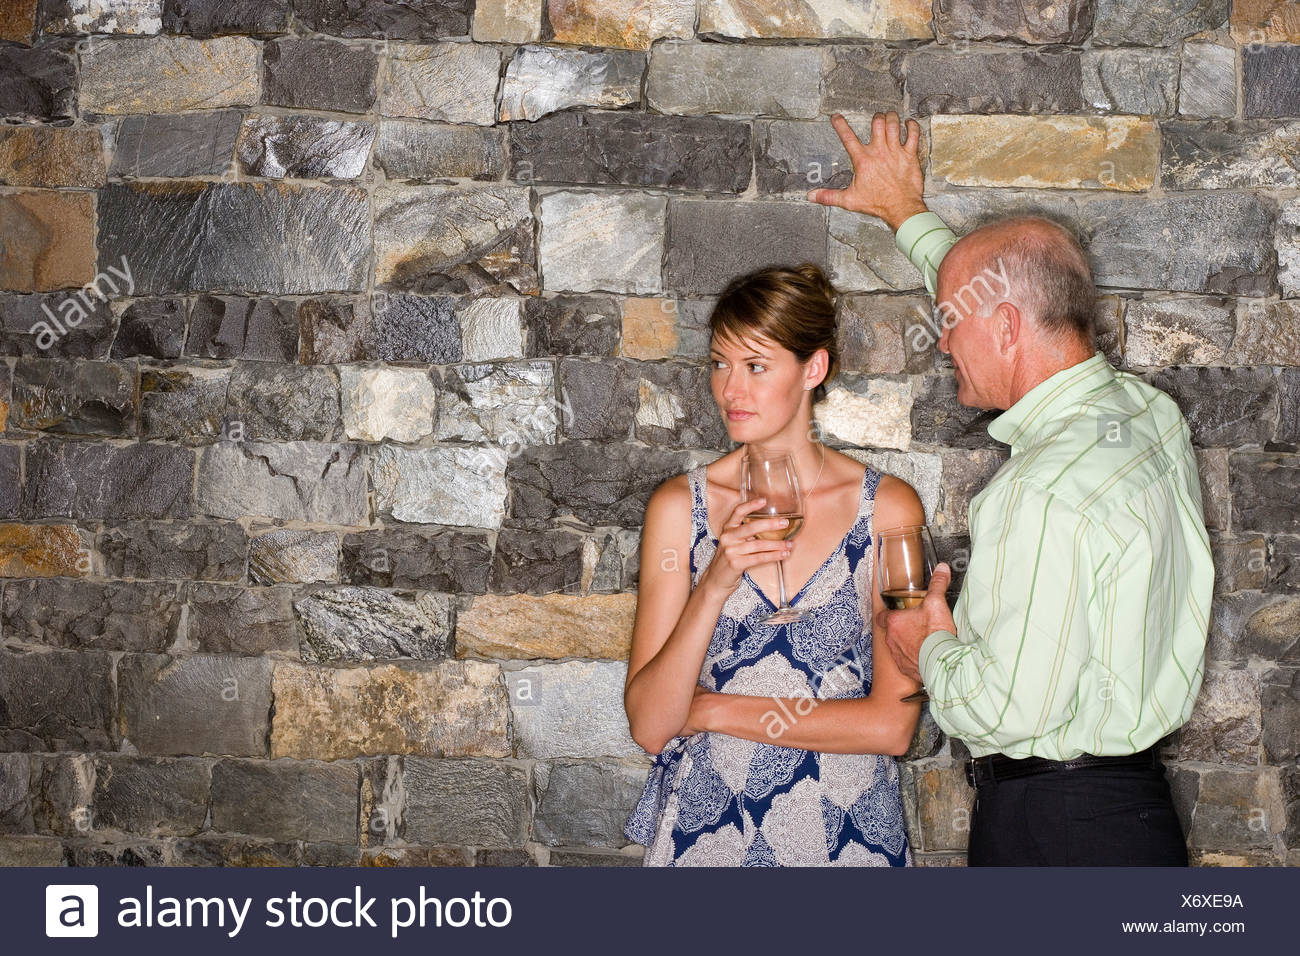 Mature man flirting with younger woman beside stone wall holding glasses of white wine woman looking away - Stock Image